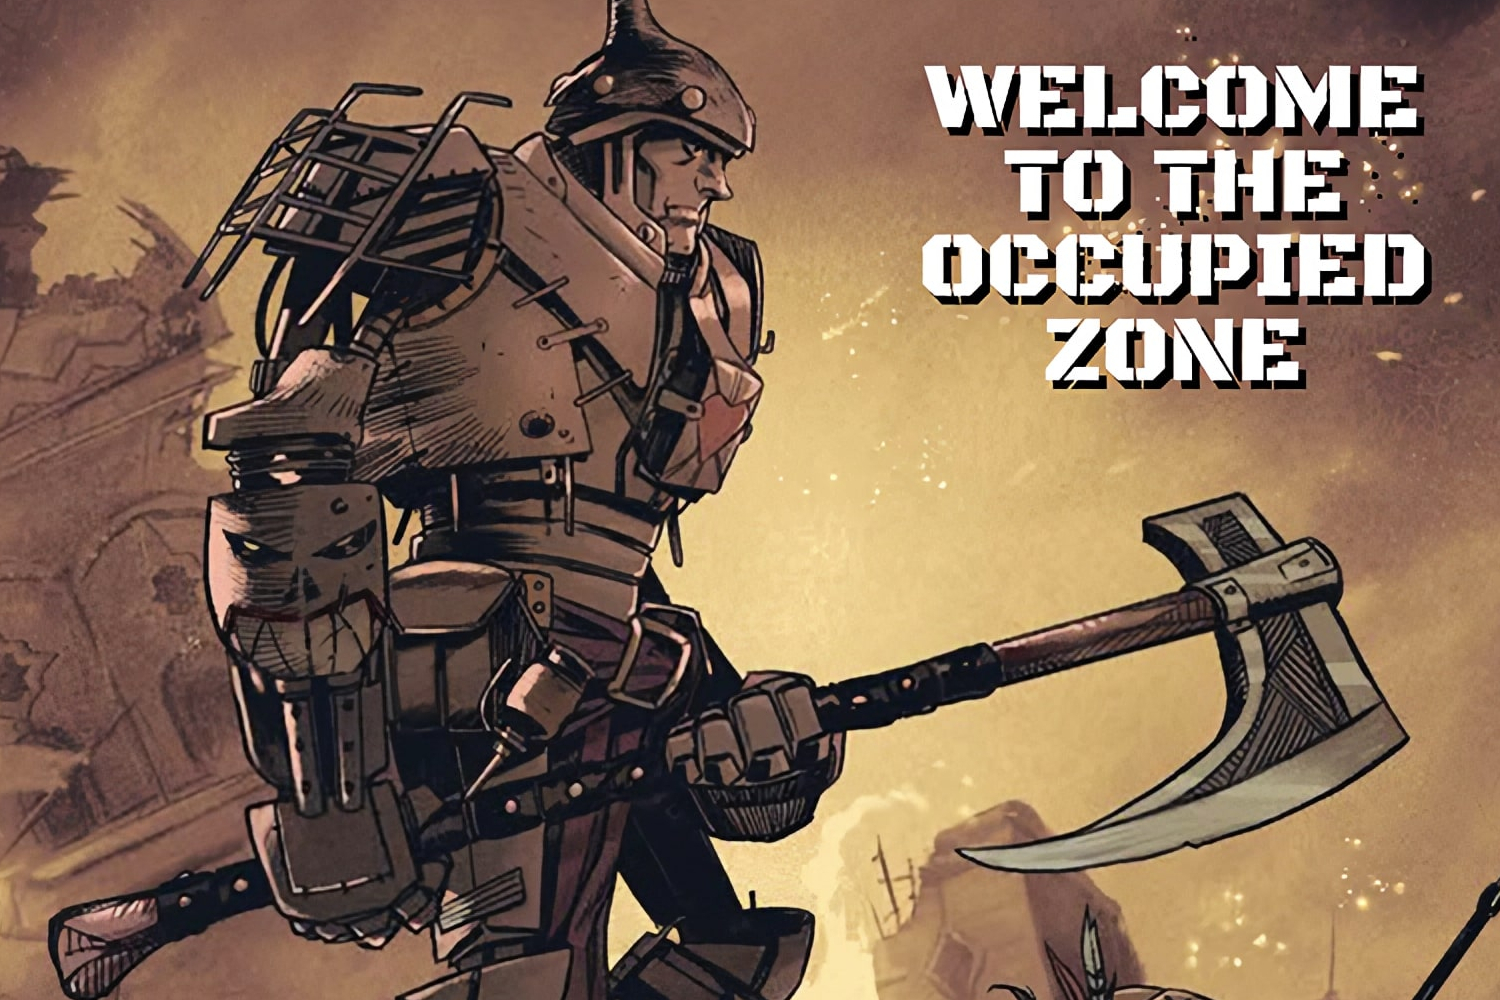 'The O.Z.' #1 review